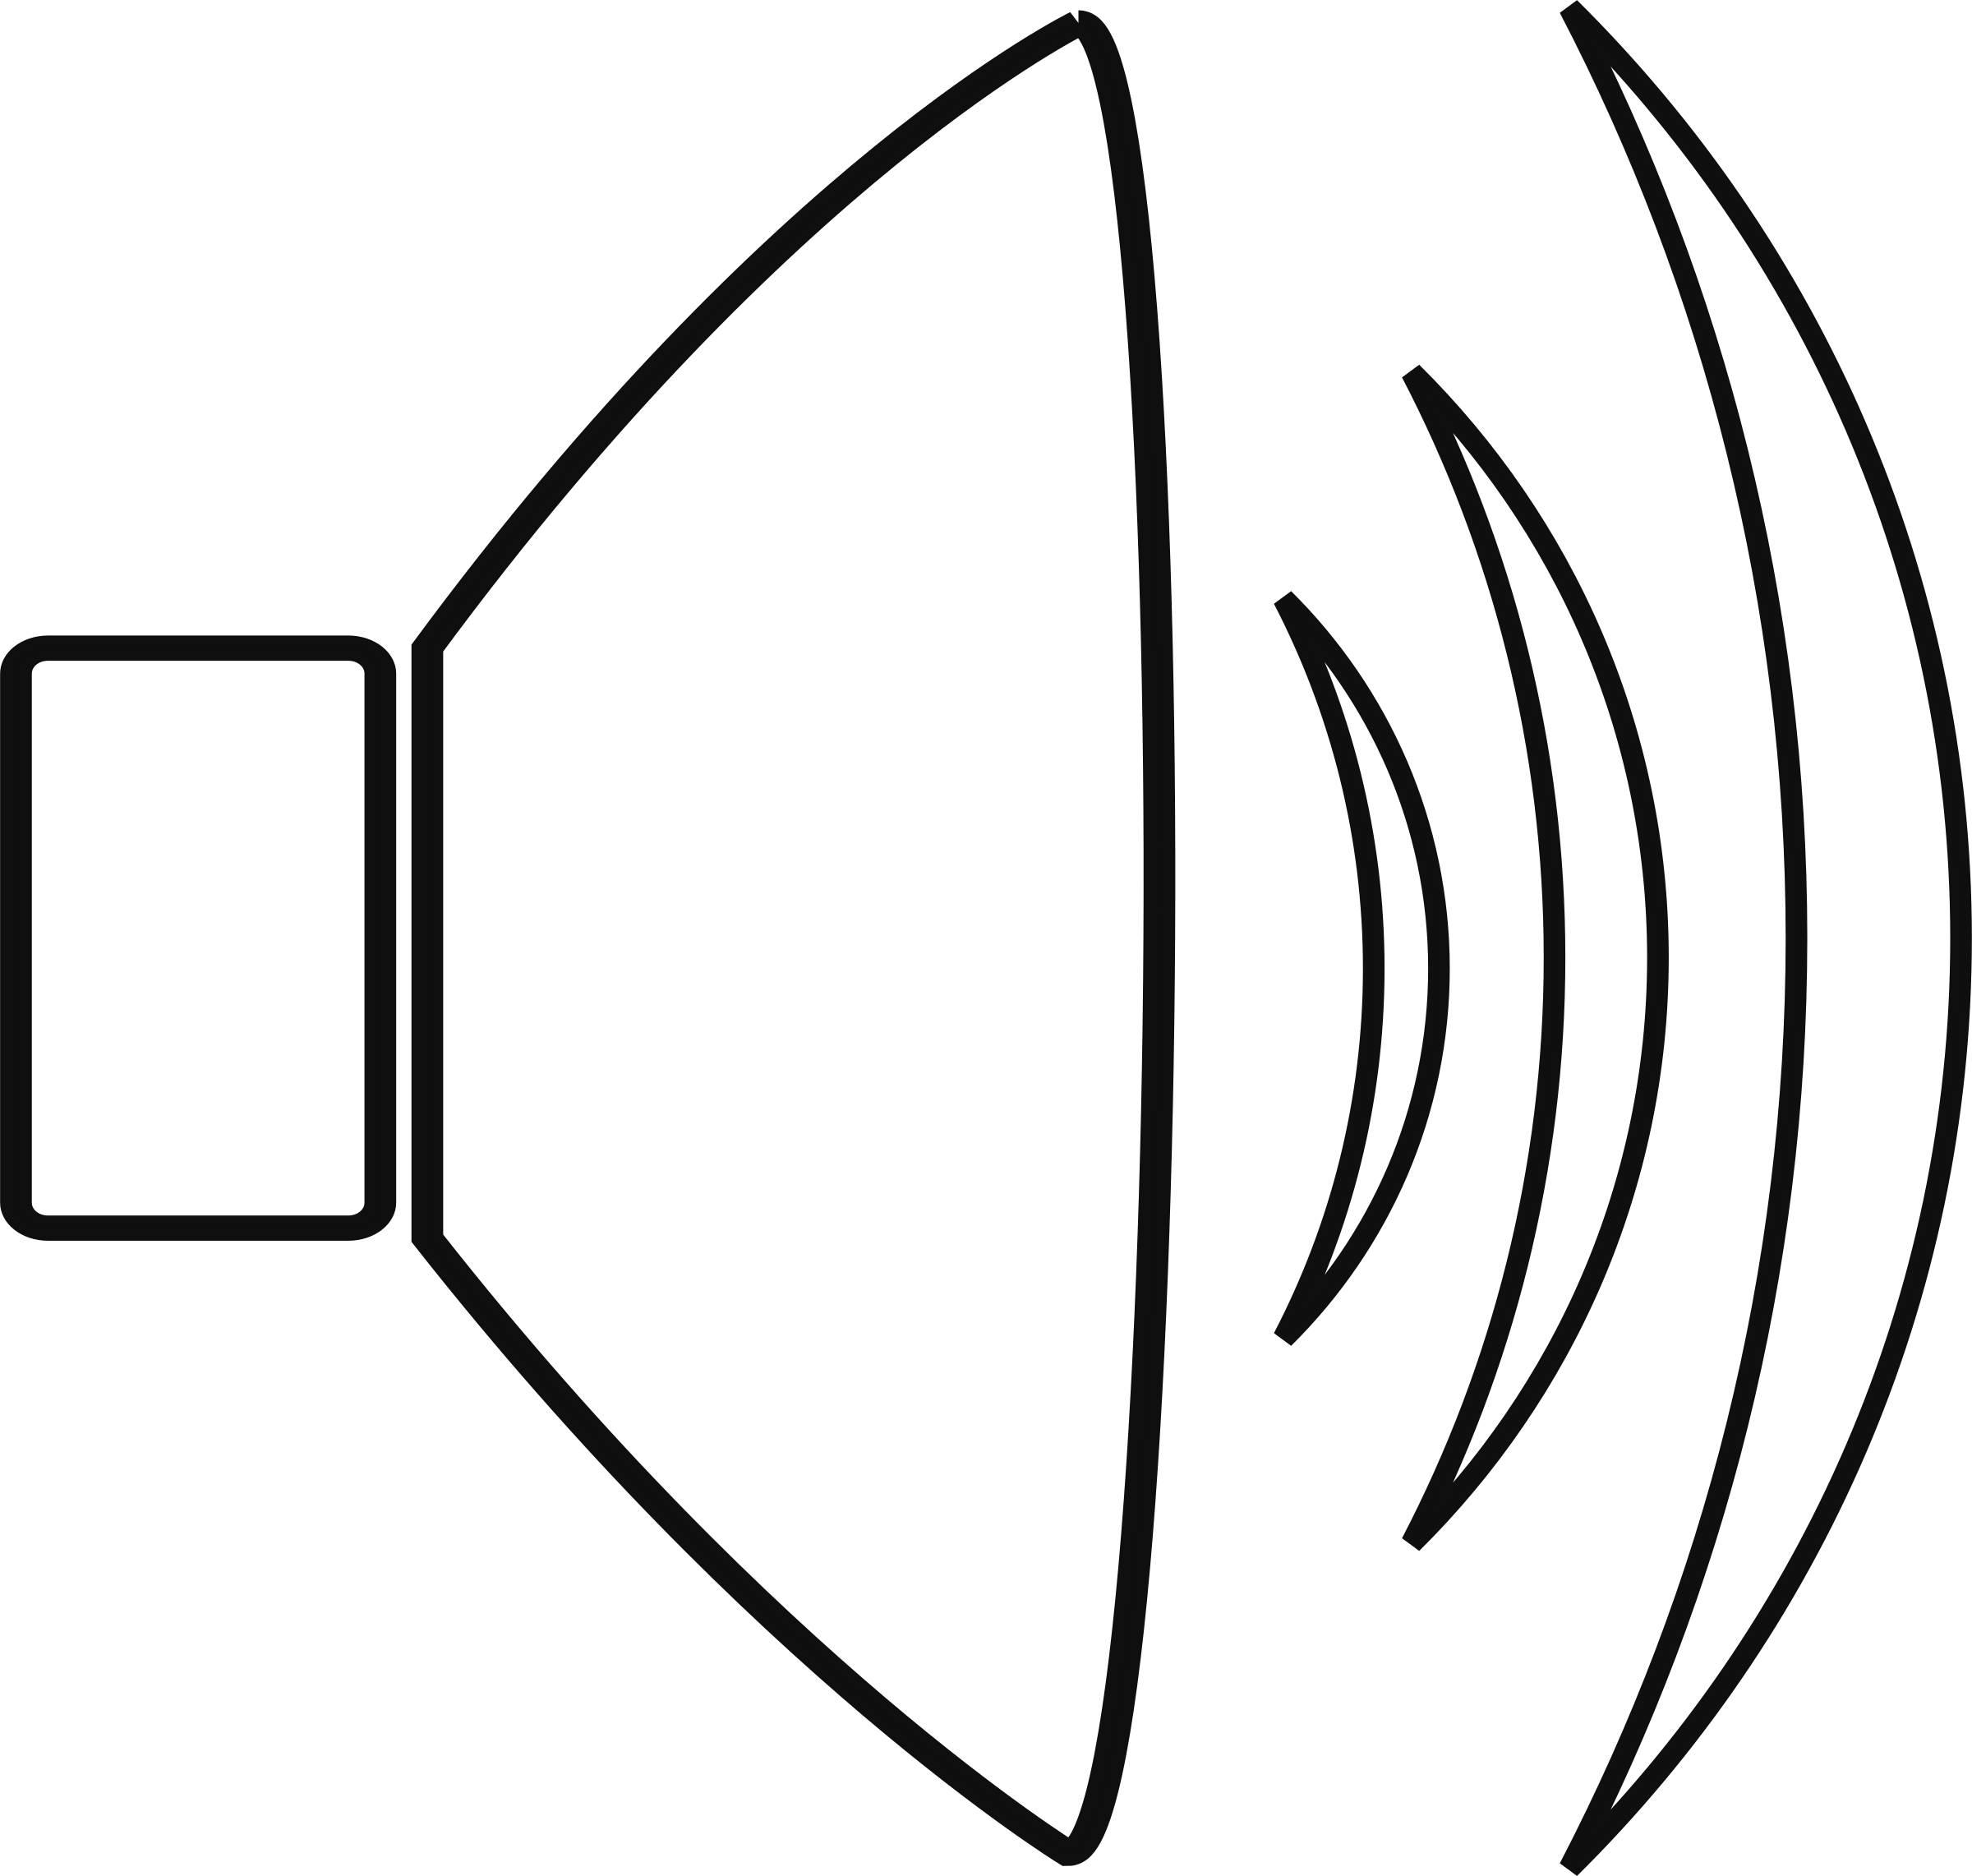 Loud sounds clipart black and white 3 » Clipart Station.